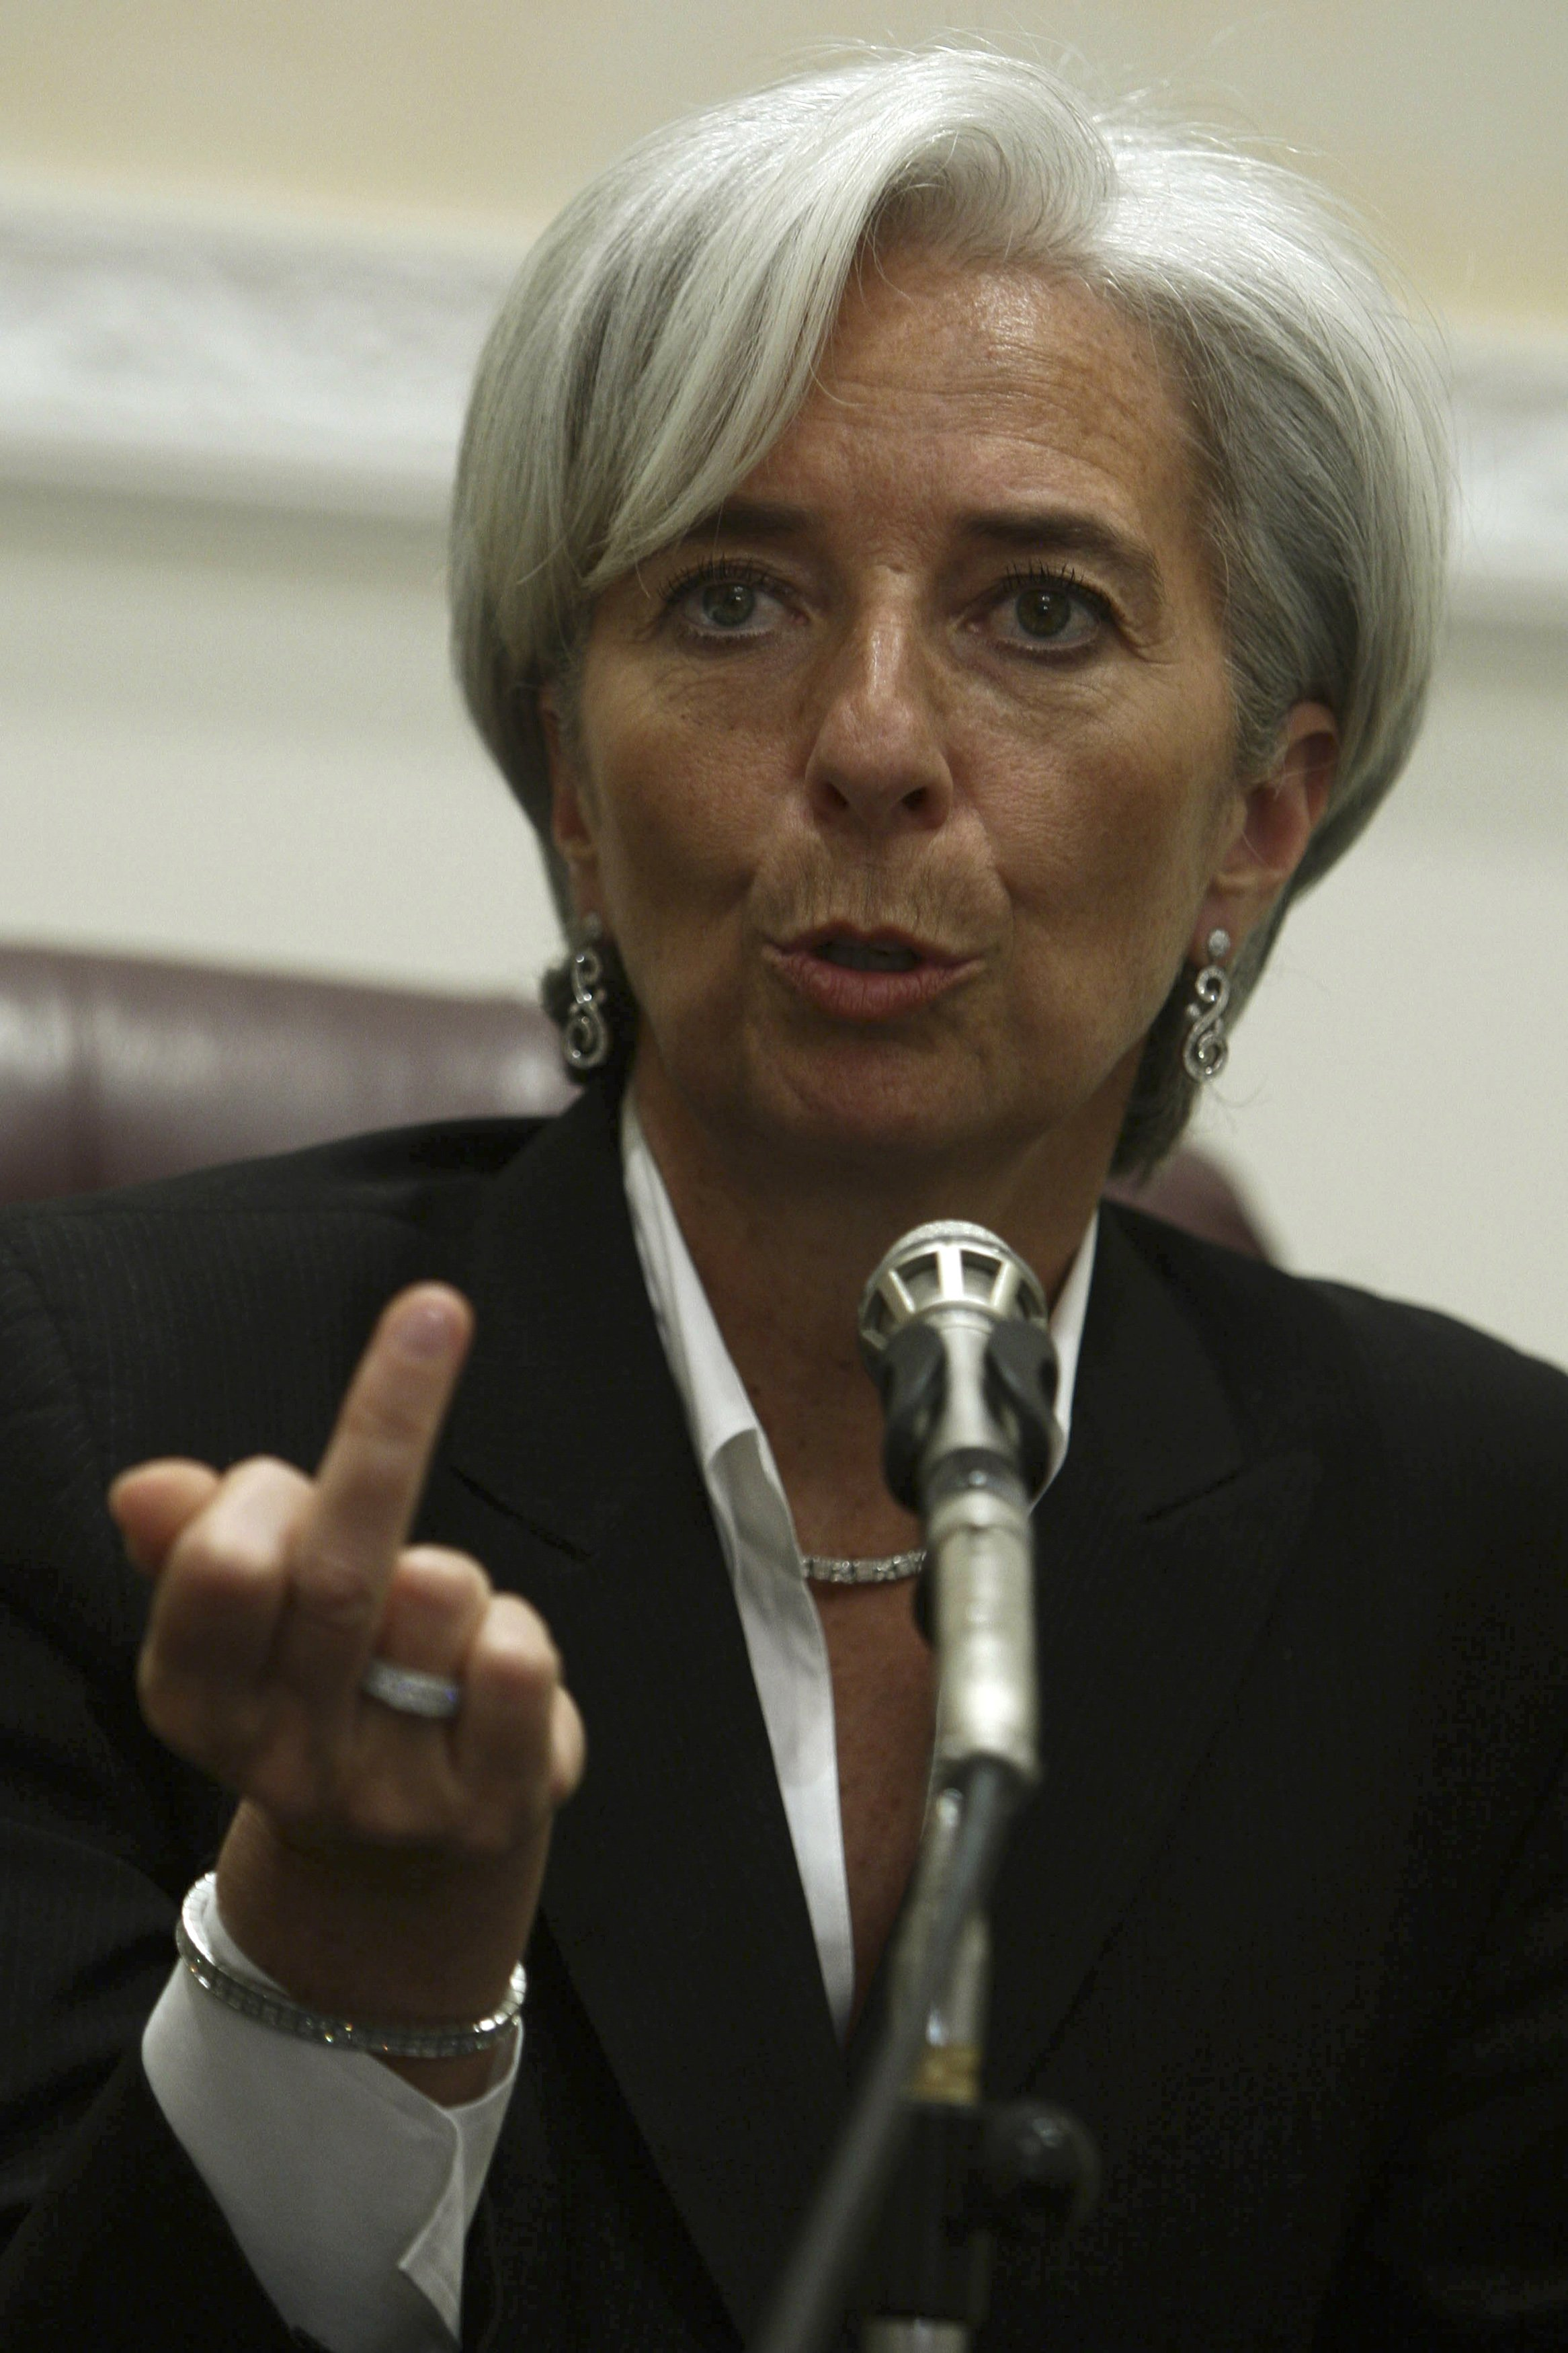 christine20lagarde20applicatour20conflits20d20interets.jpg